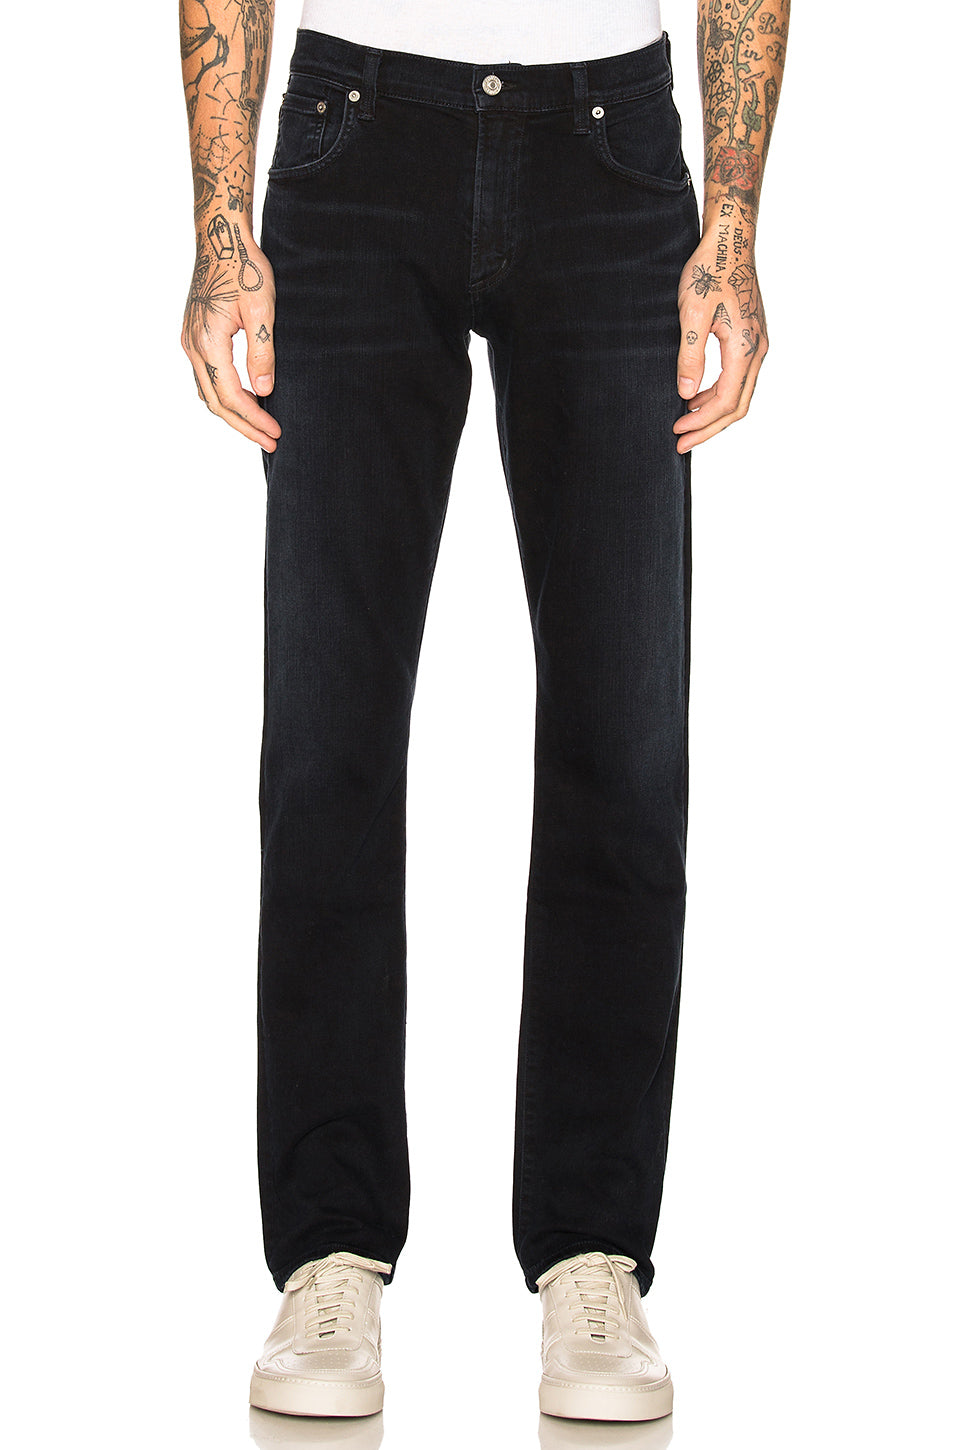 Citizens of Humanity Gage Slim Straight Leg Jeans in ink 6107B-927